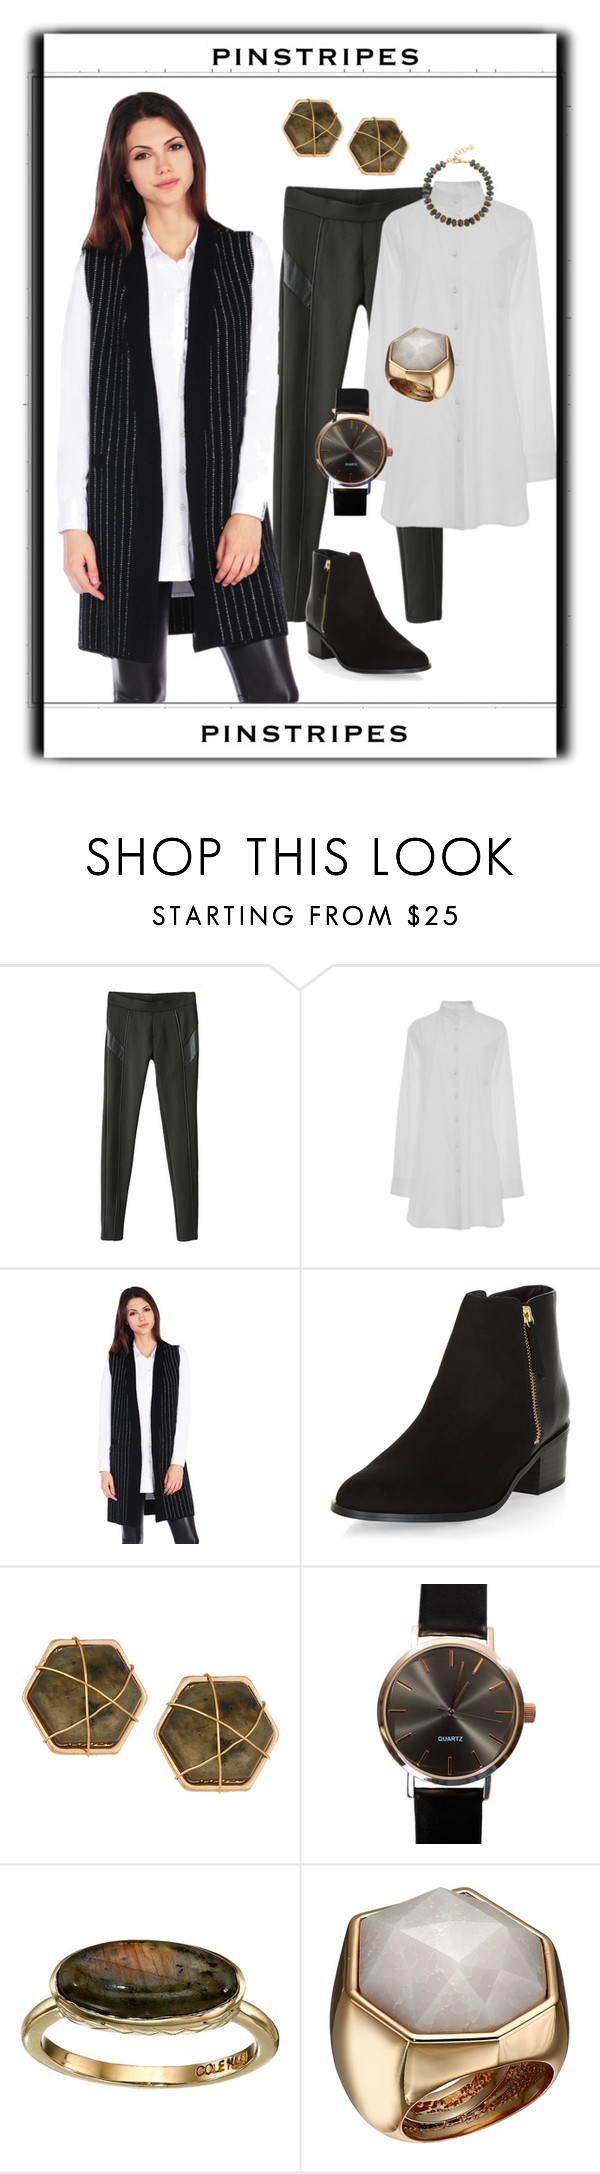 """My Pinstripe Style"" by dundiddit ❤ liked on Polyvore featuring Marisa Witkin, RD Style, New Look, Panacea, Cole Haan, Vince Camuto and Nest"